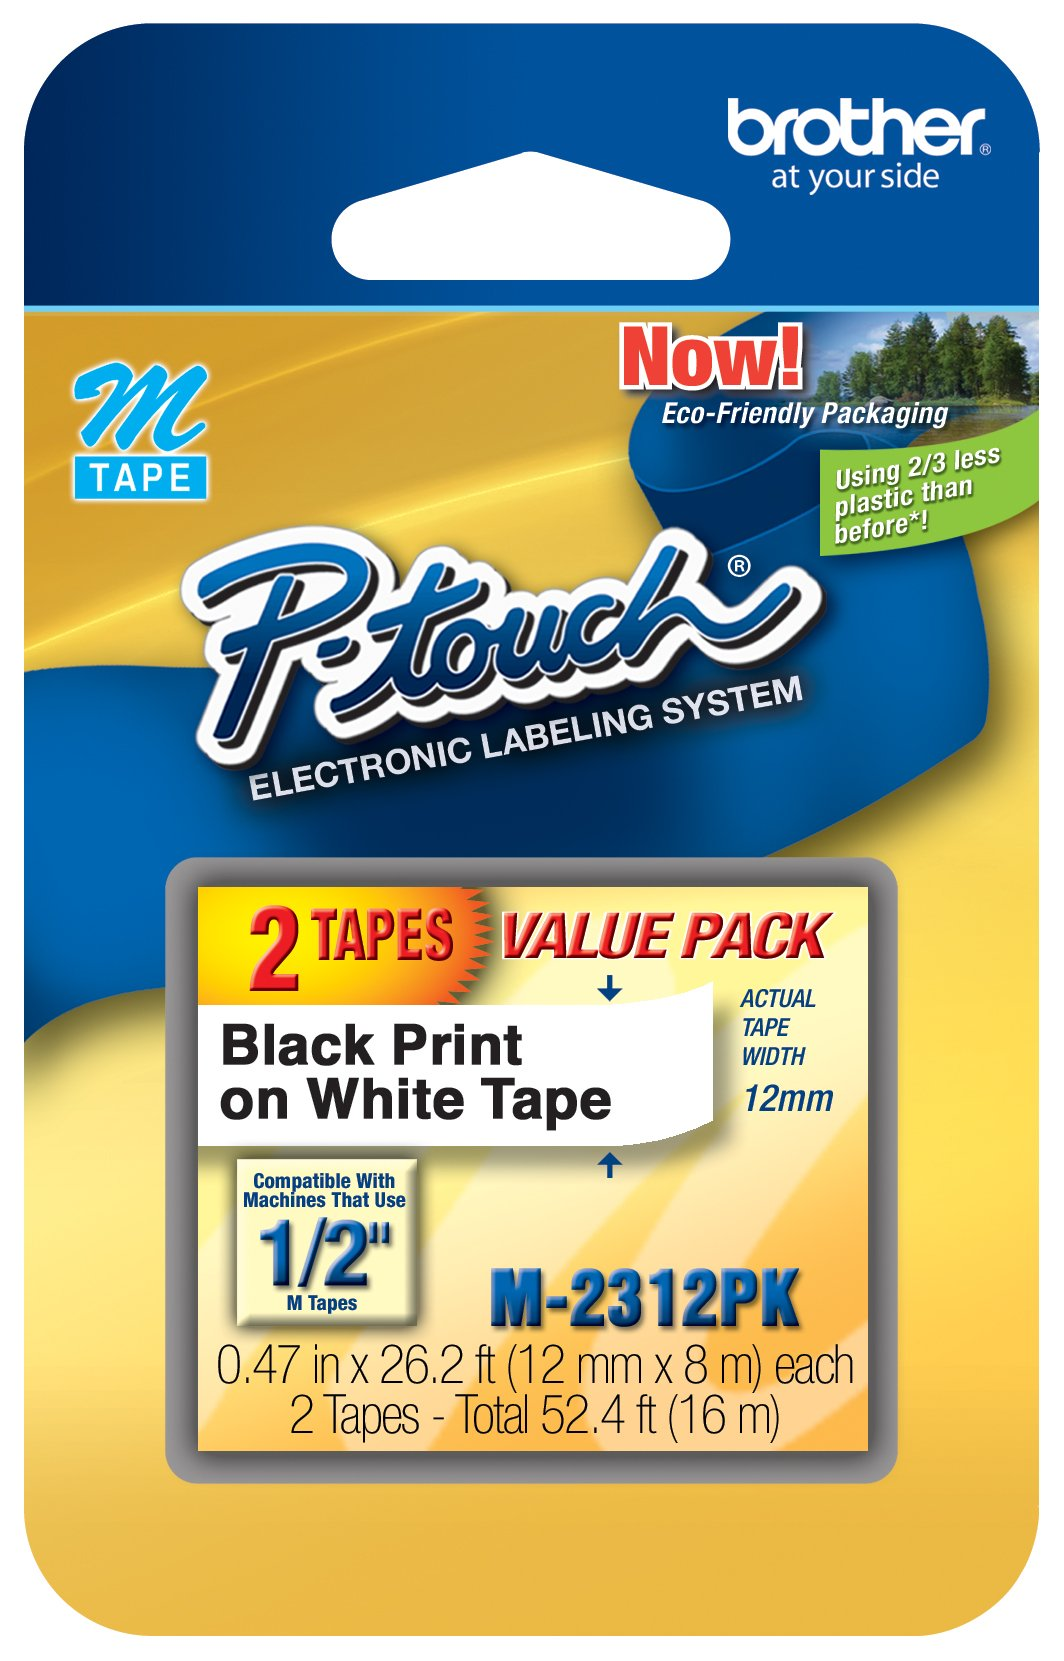 Brother Genuine P-touch M-2312PK Tape, 2 Pack, 1/2'' (0.47'') Wide Standard Non-Laminated Tape, Black on White, Recommended for Home and Indoor Use, 0.47'' x 26.2' (12mm x 8M), 2-Pack, M2312PK, M231